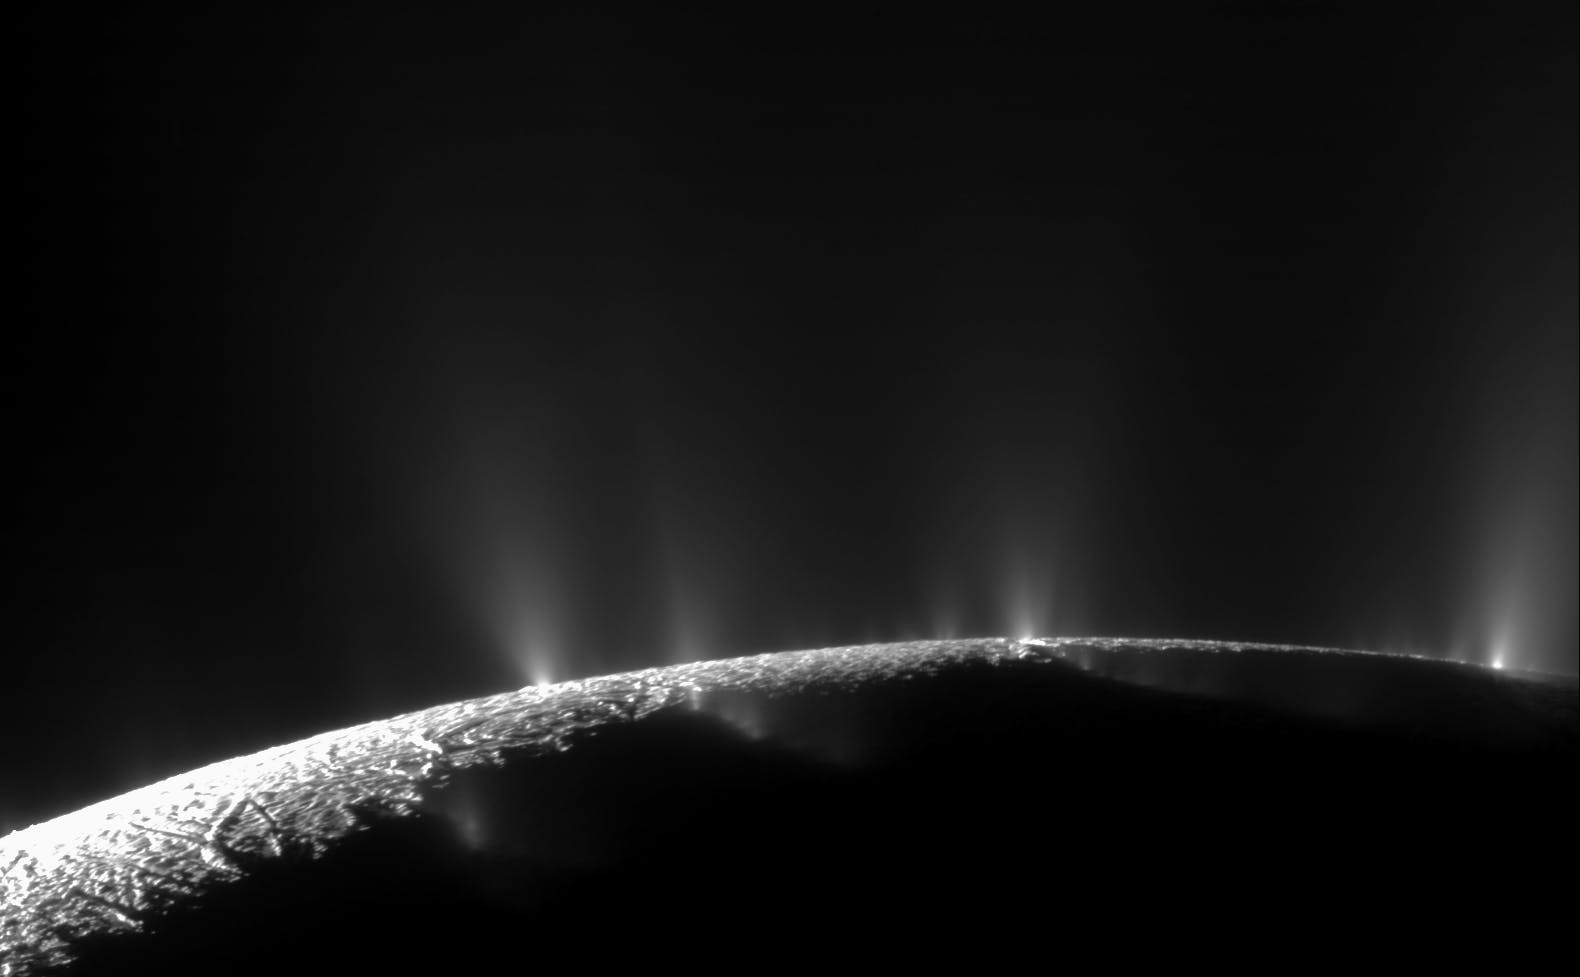 Geysers erupting on the surface of Enceladus, photographed by Cassini